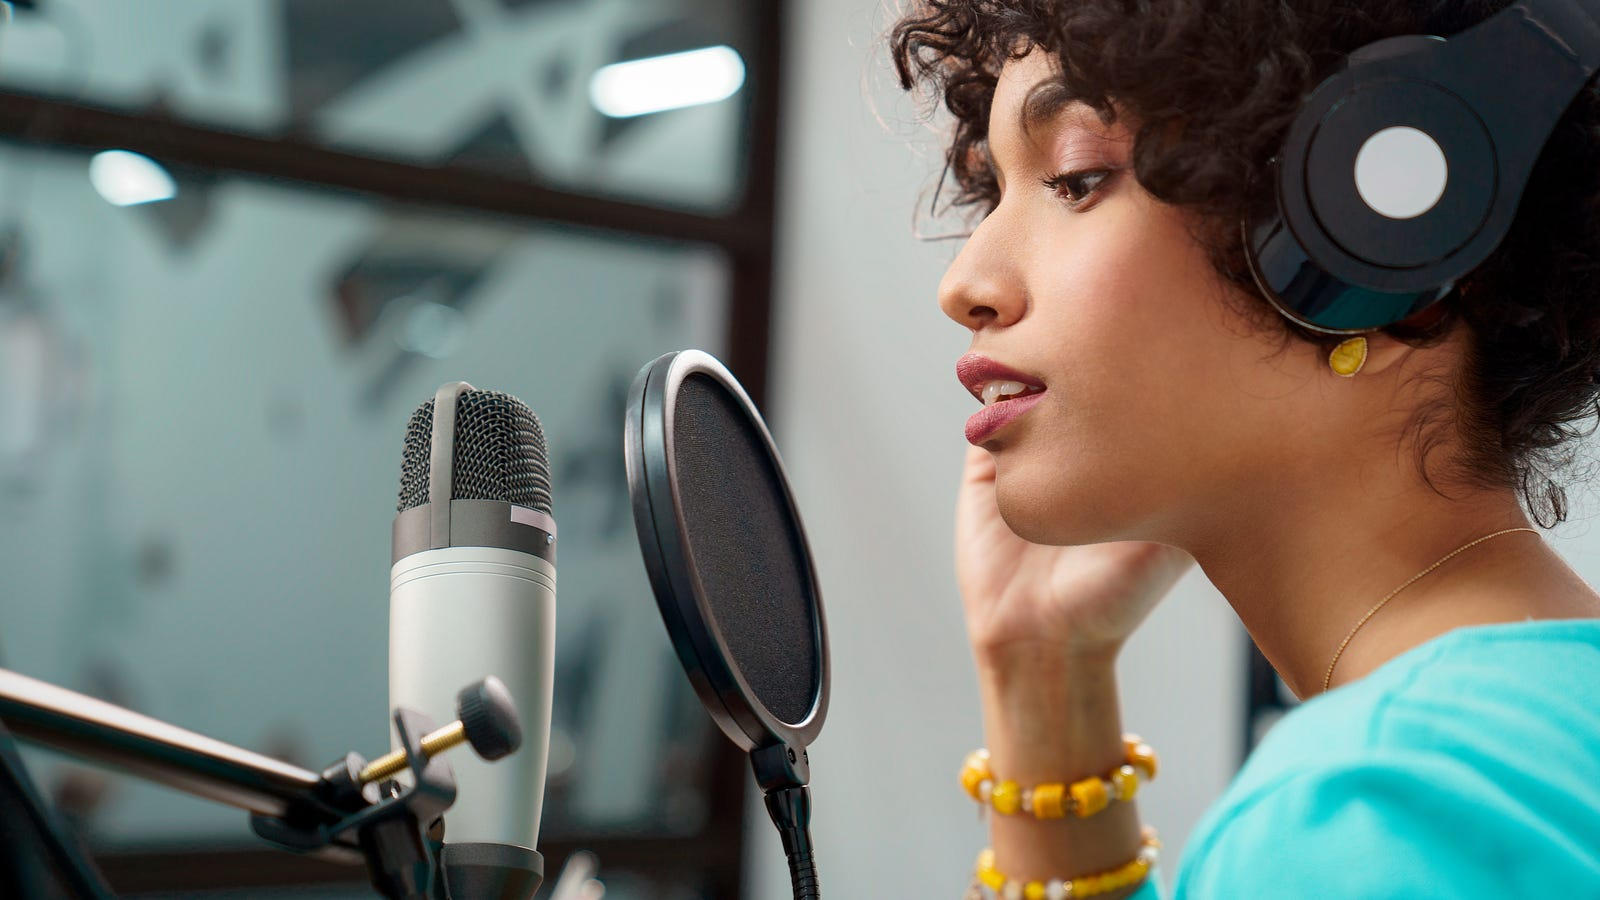 Woman speaking into a microphone in a studio